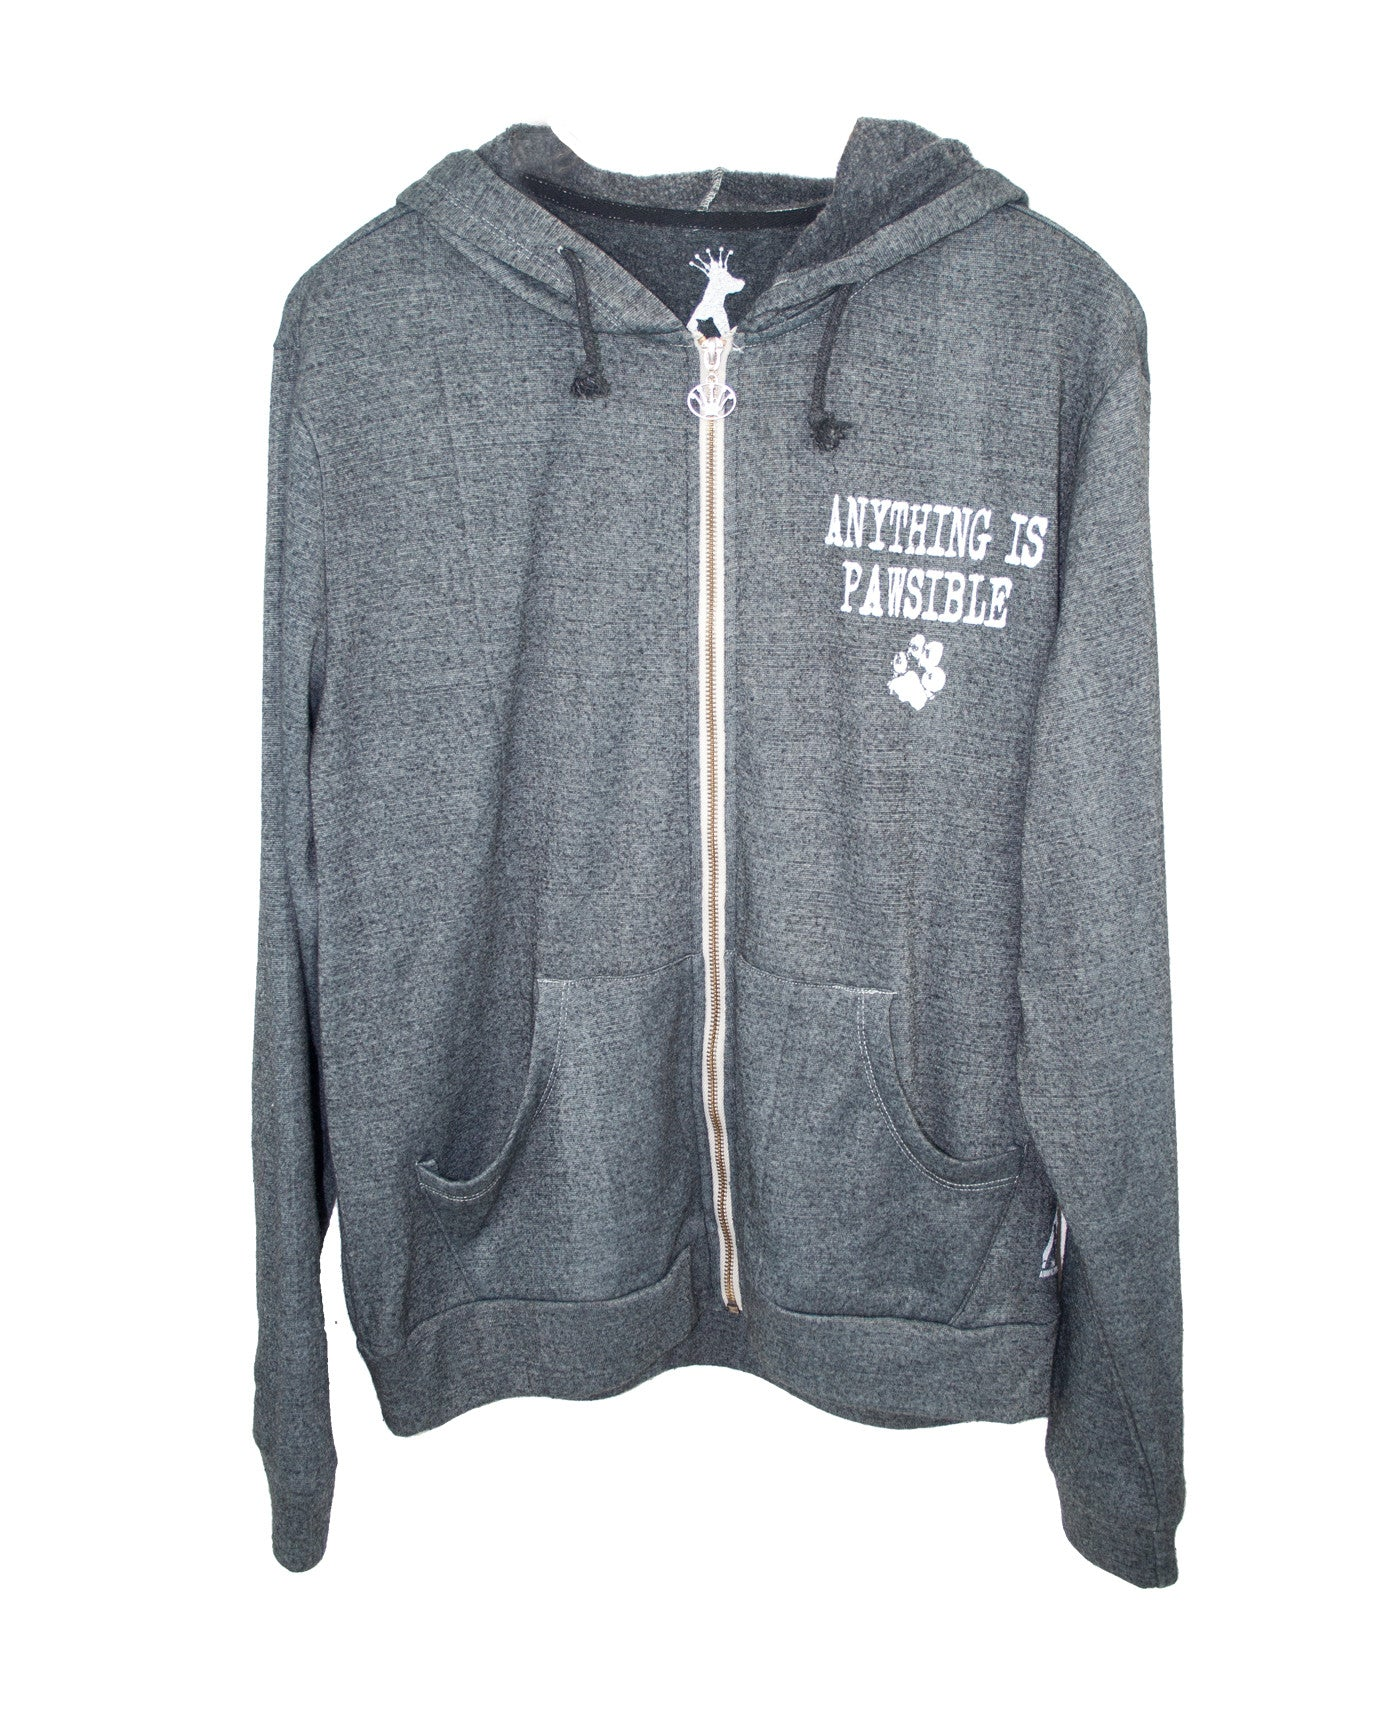 ANYTHING IS PAWSIBLE UNISEX HOODIE ZIPPER JACKET